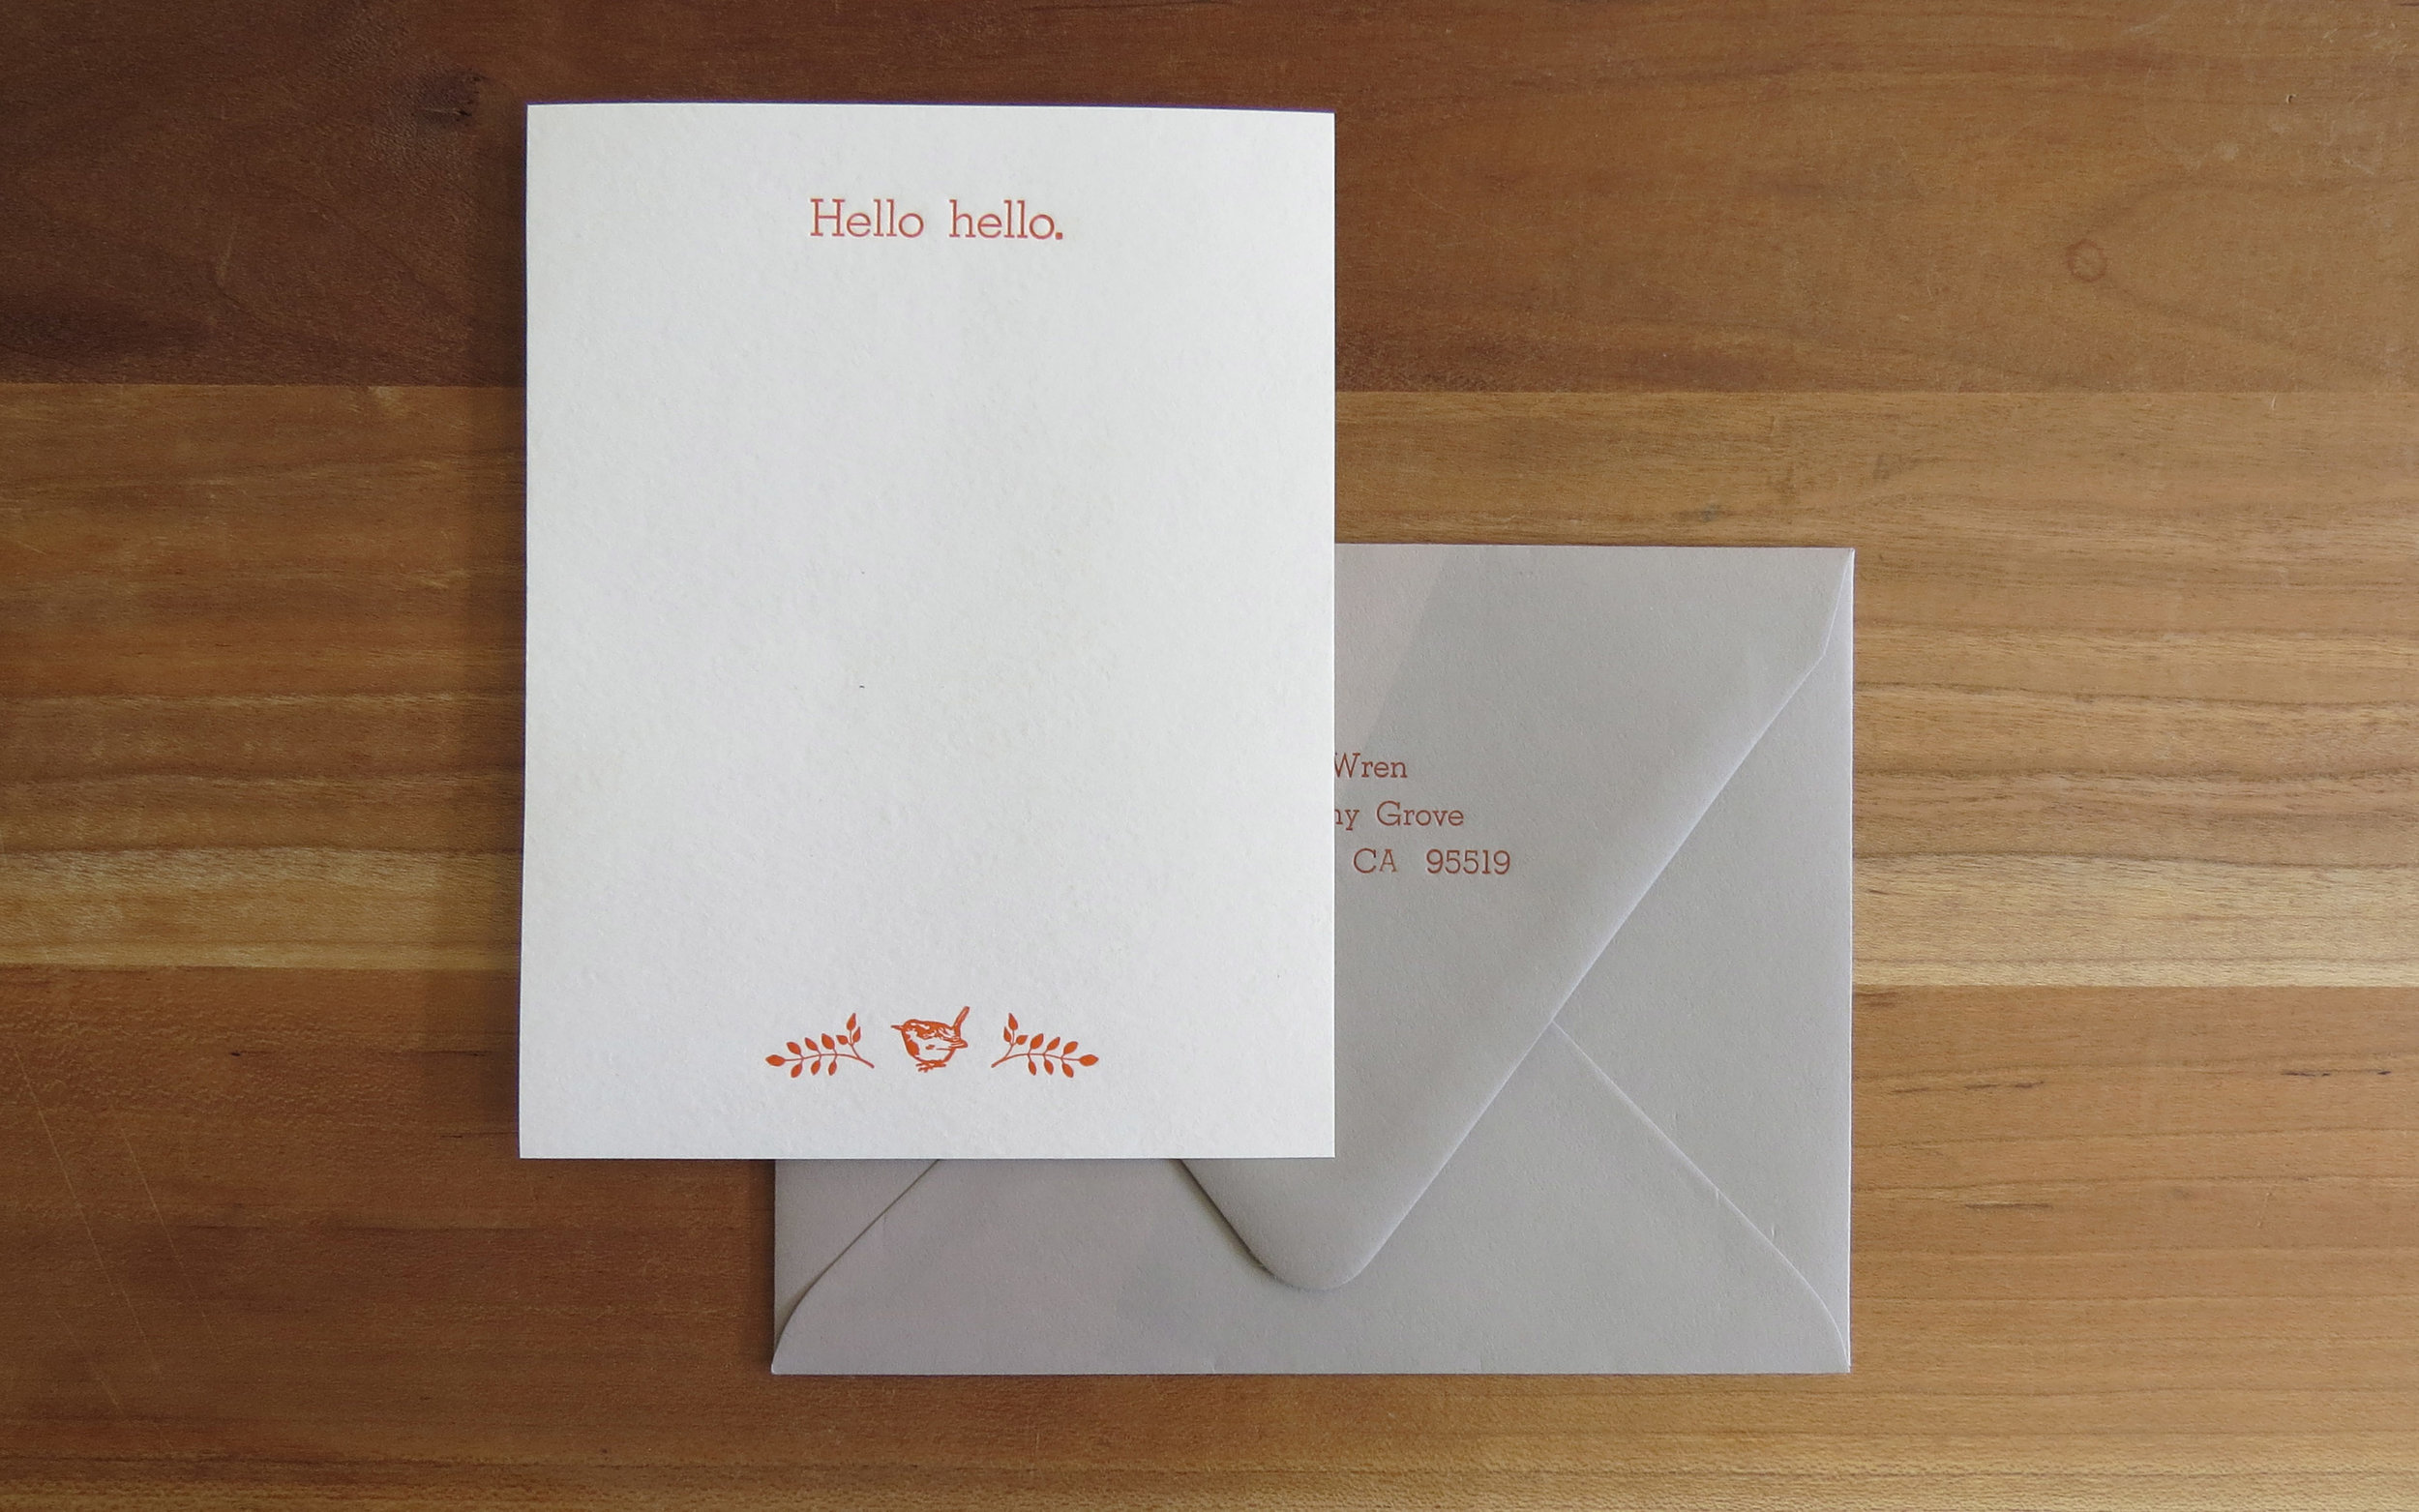 Personal stationery - 1 color, quarter sheet, with return-addressed envelopes.